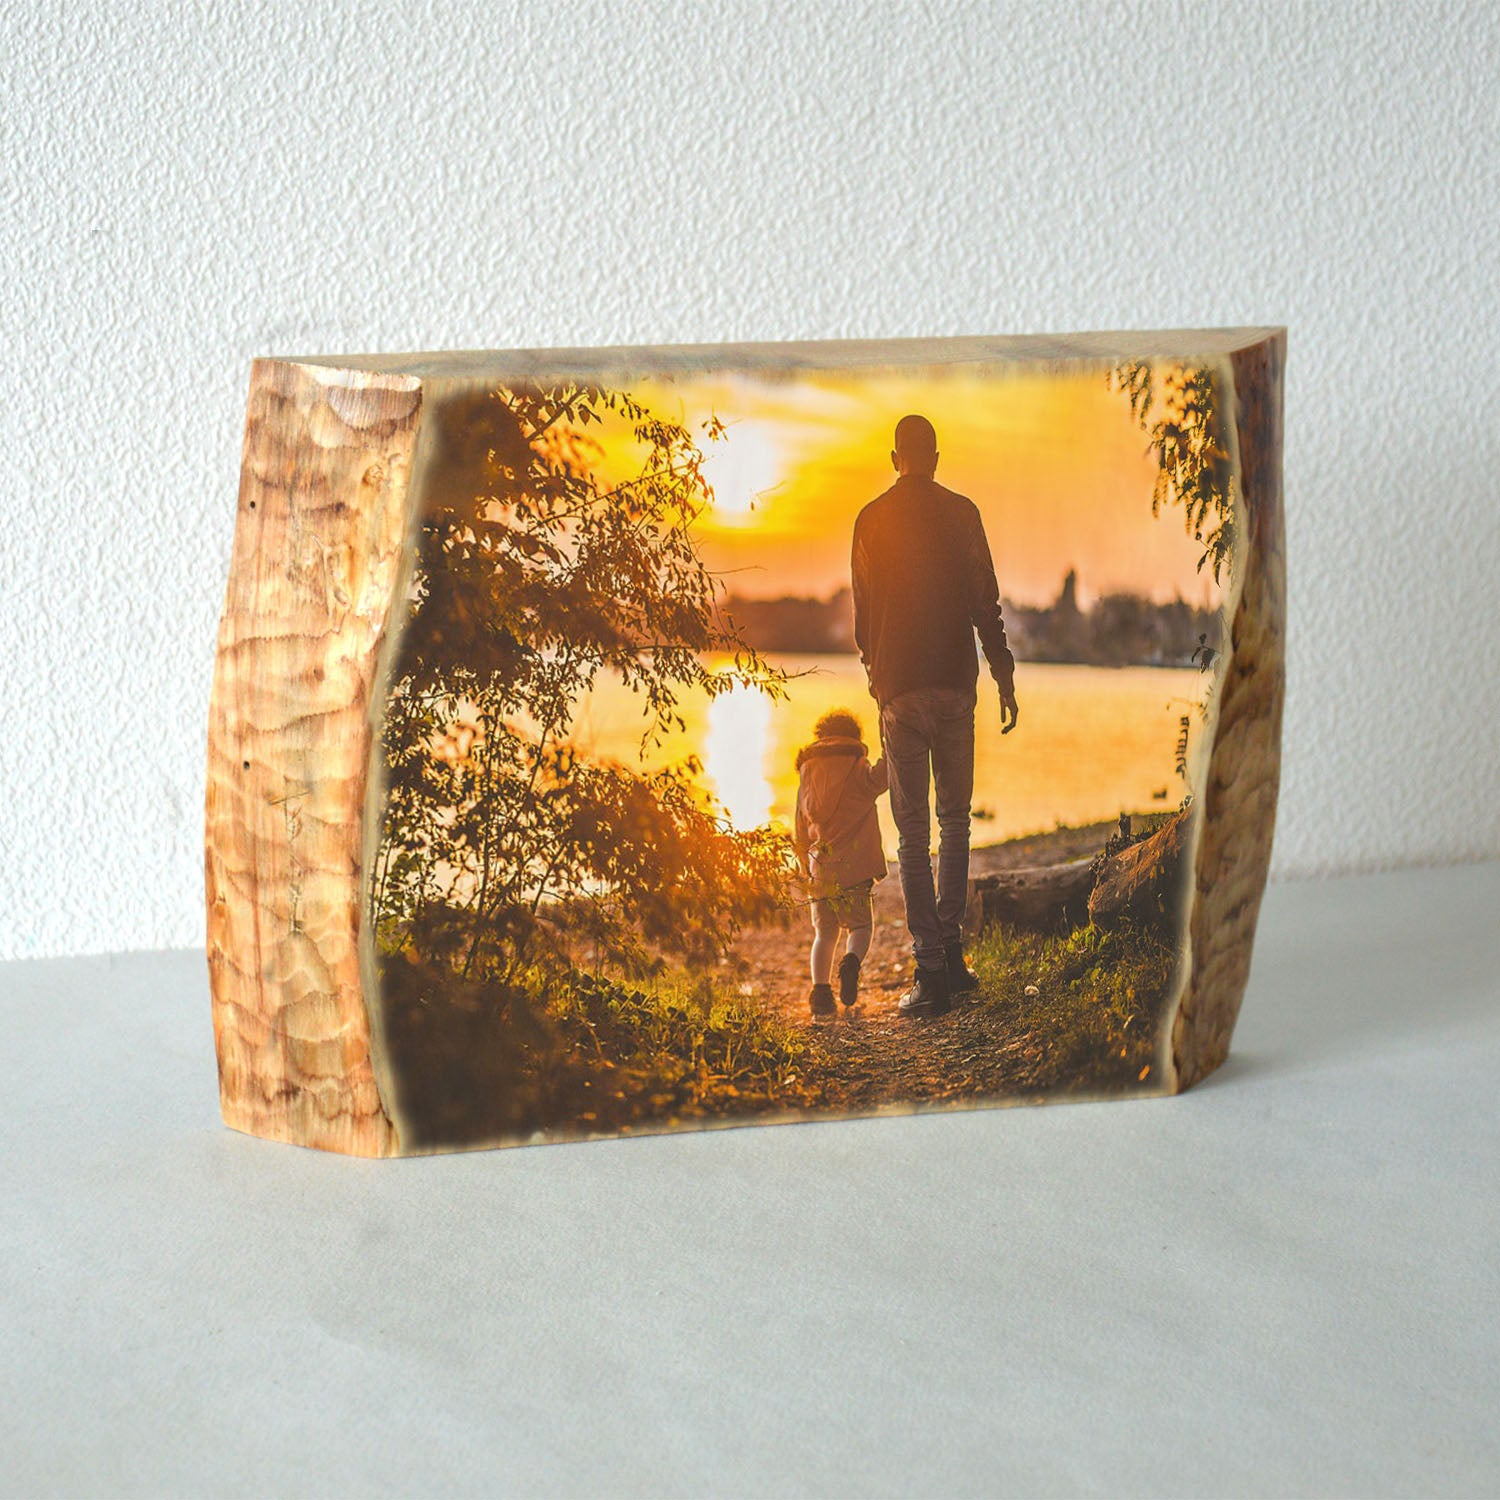 Wood Photo Transfer on Wood Slice Photo on Wood Slice Rustic Wood